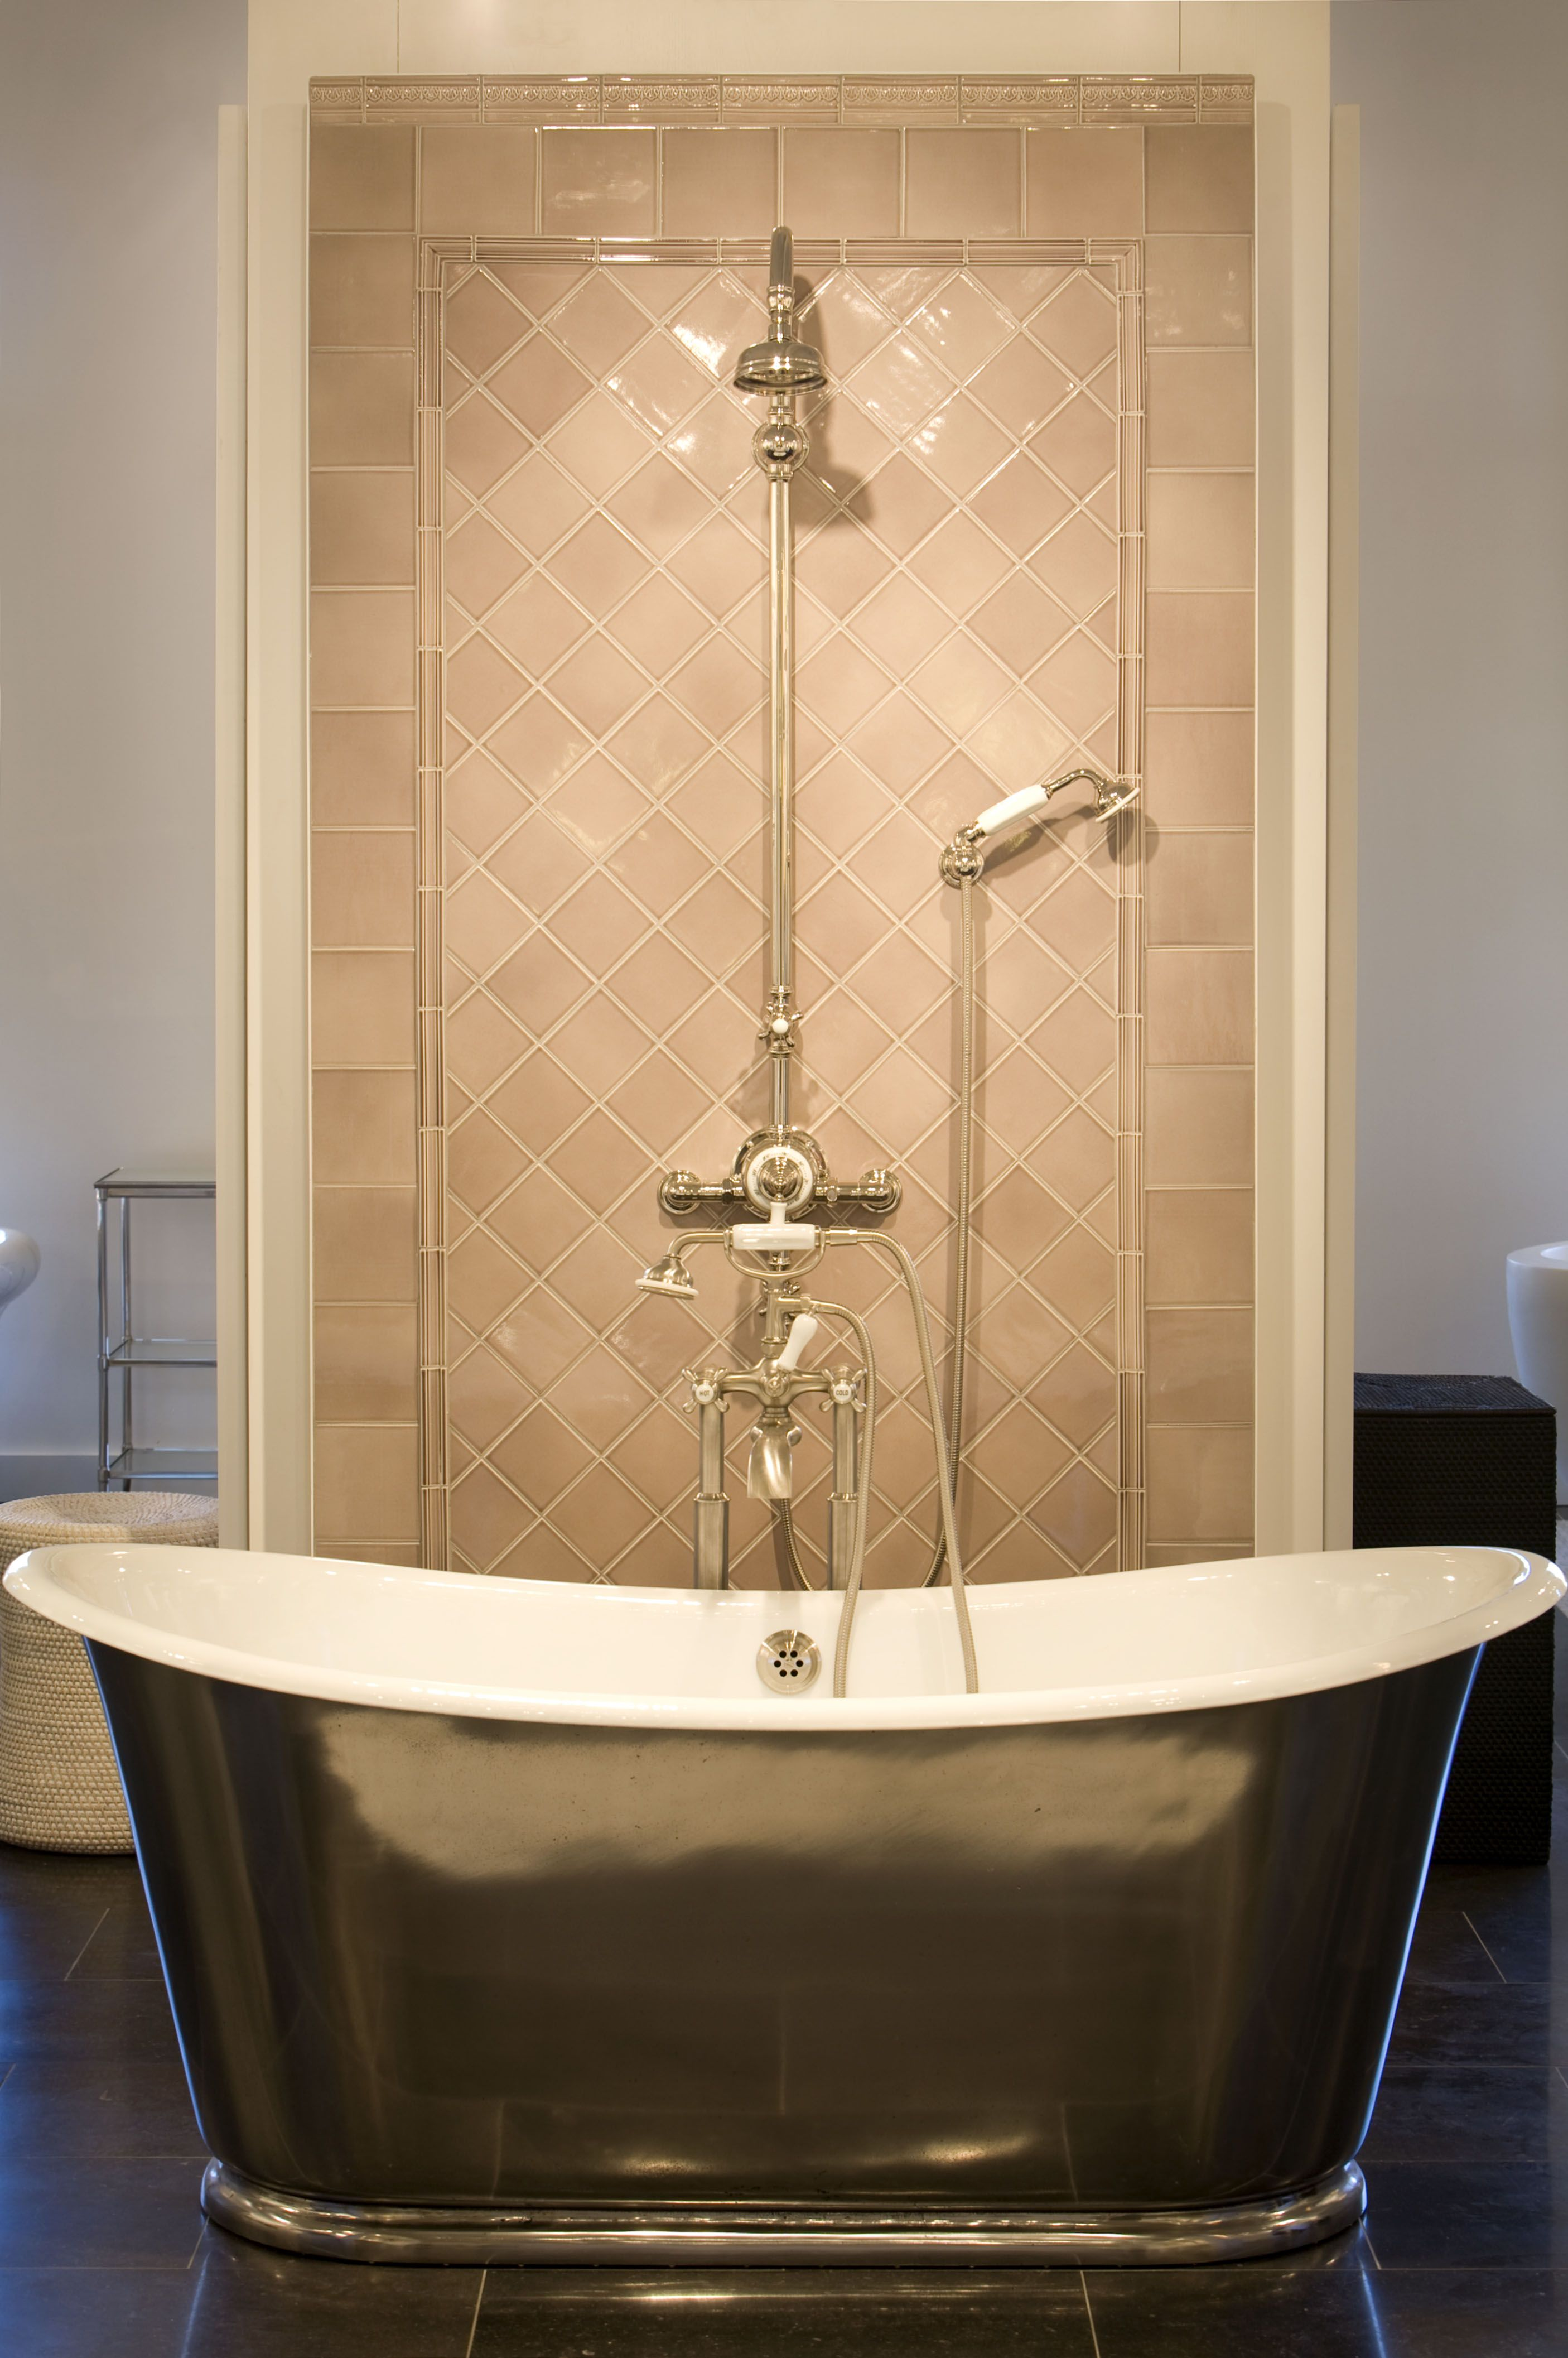 Candide Tub in the Denver Showroom | Denver Showroom | Pinterest ...